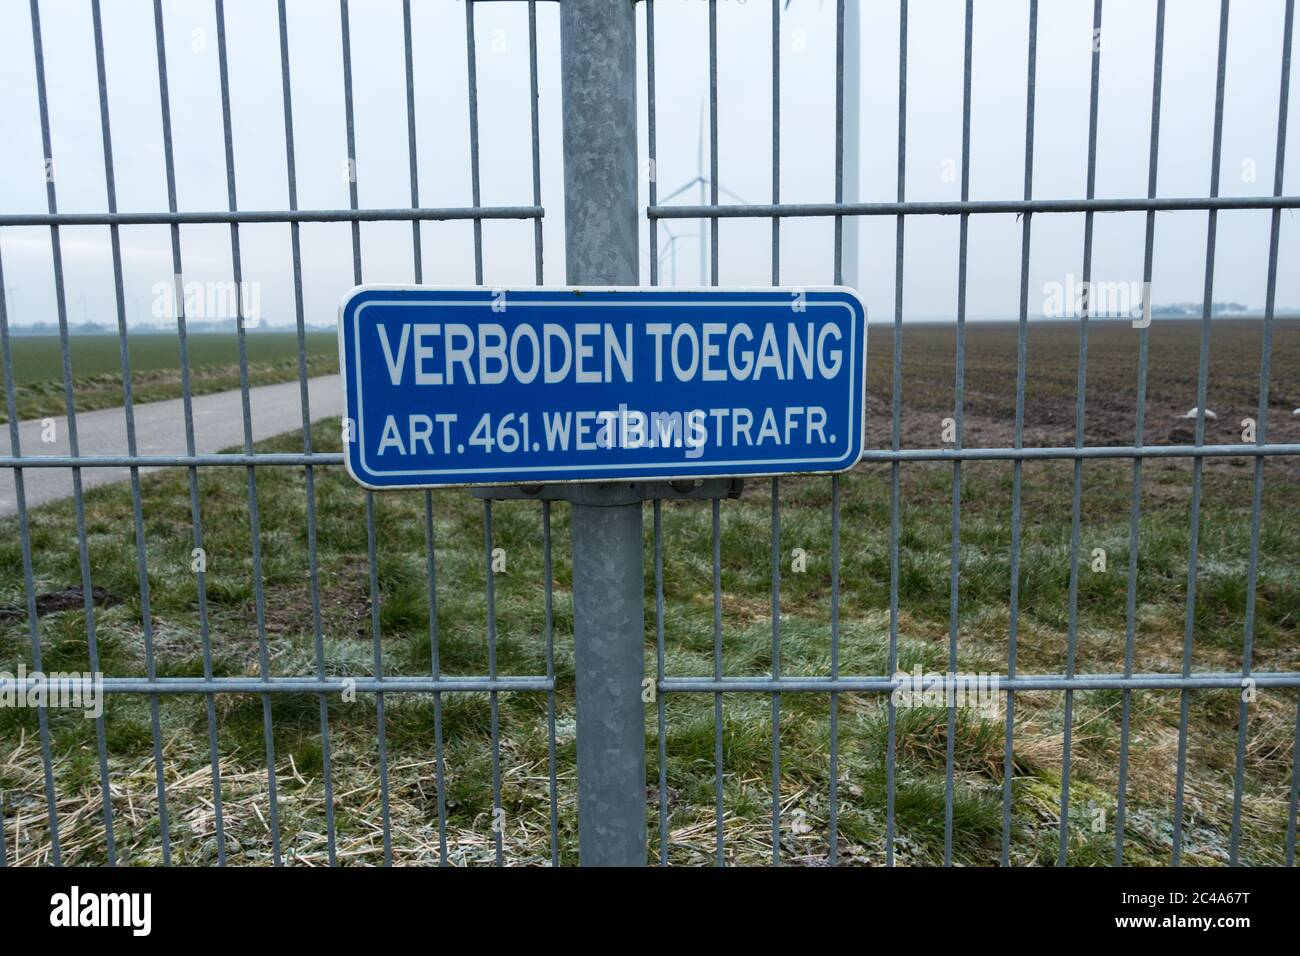 """Sign no access no entry on a fence Dutch article 461 saying """"entry prohibited, article 461 penal code"""" Stock Photo"""